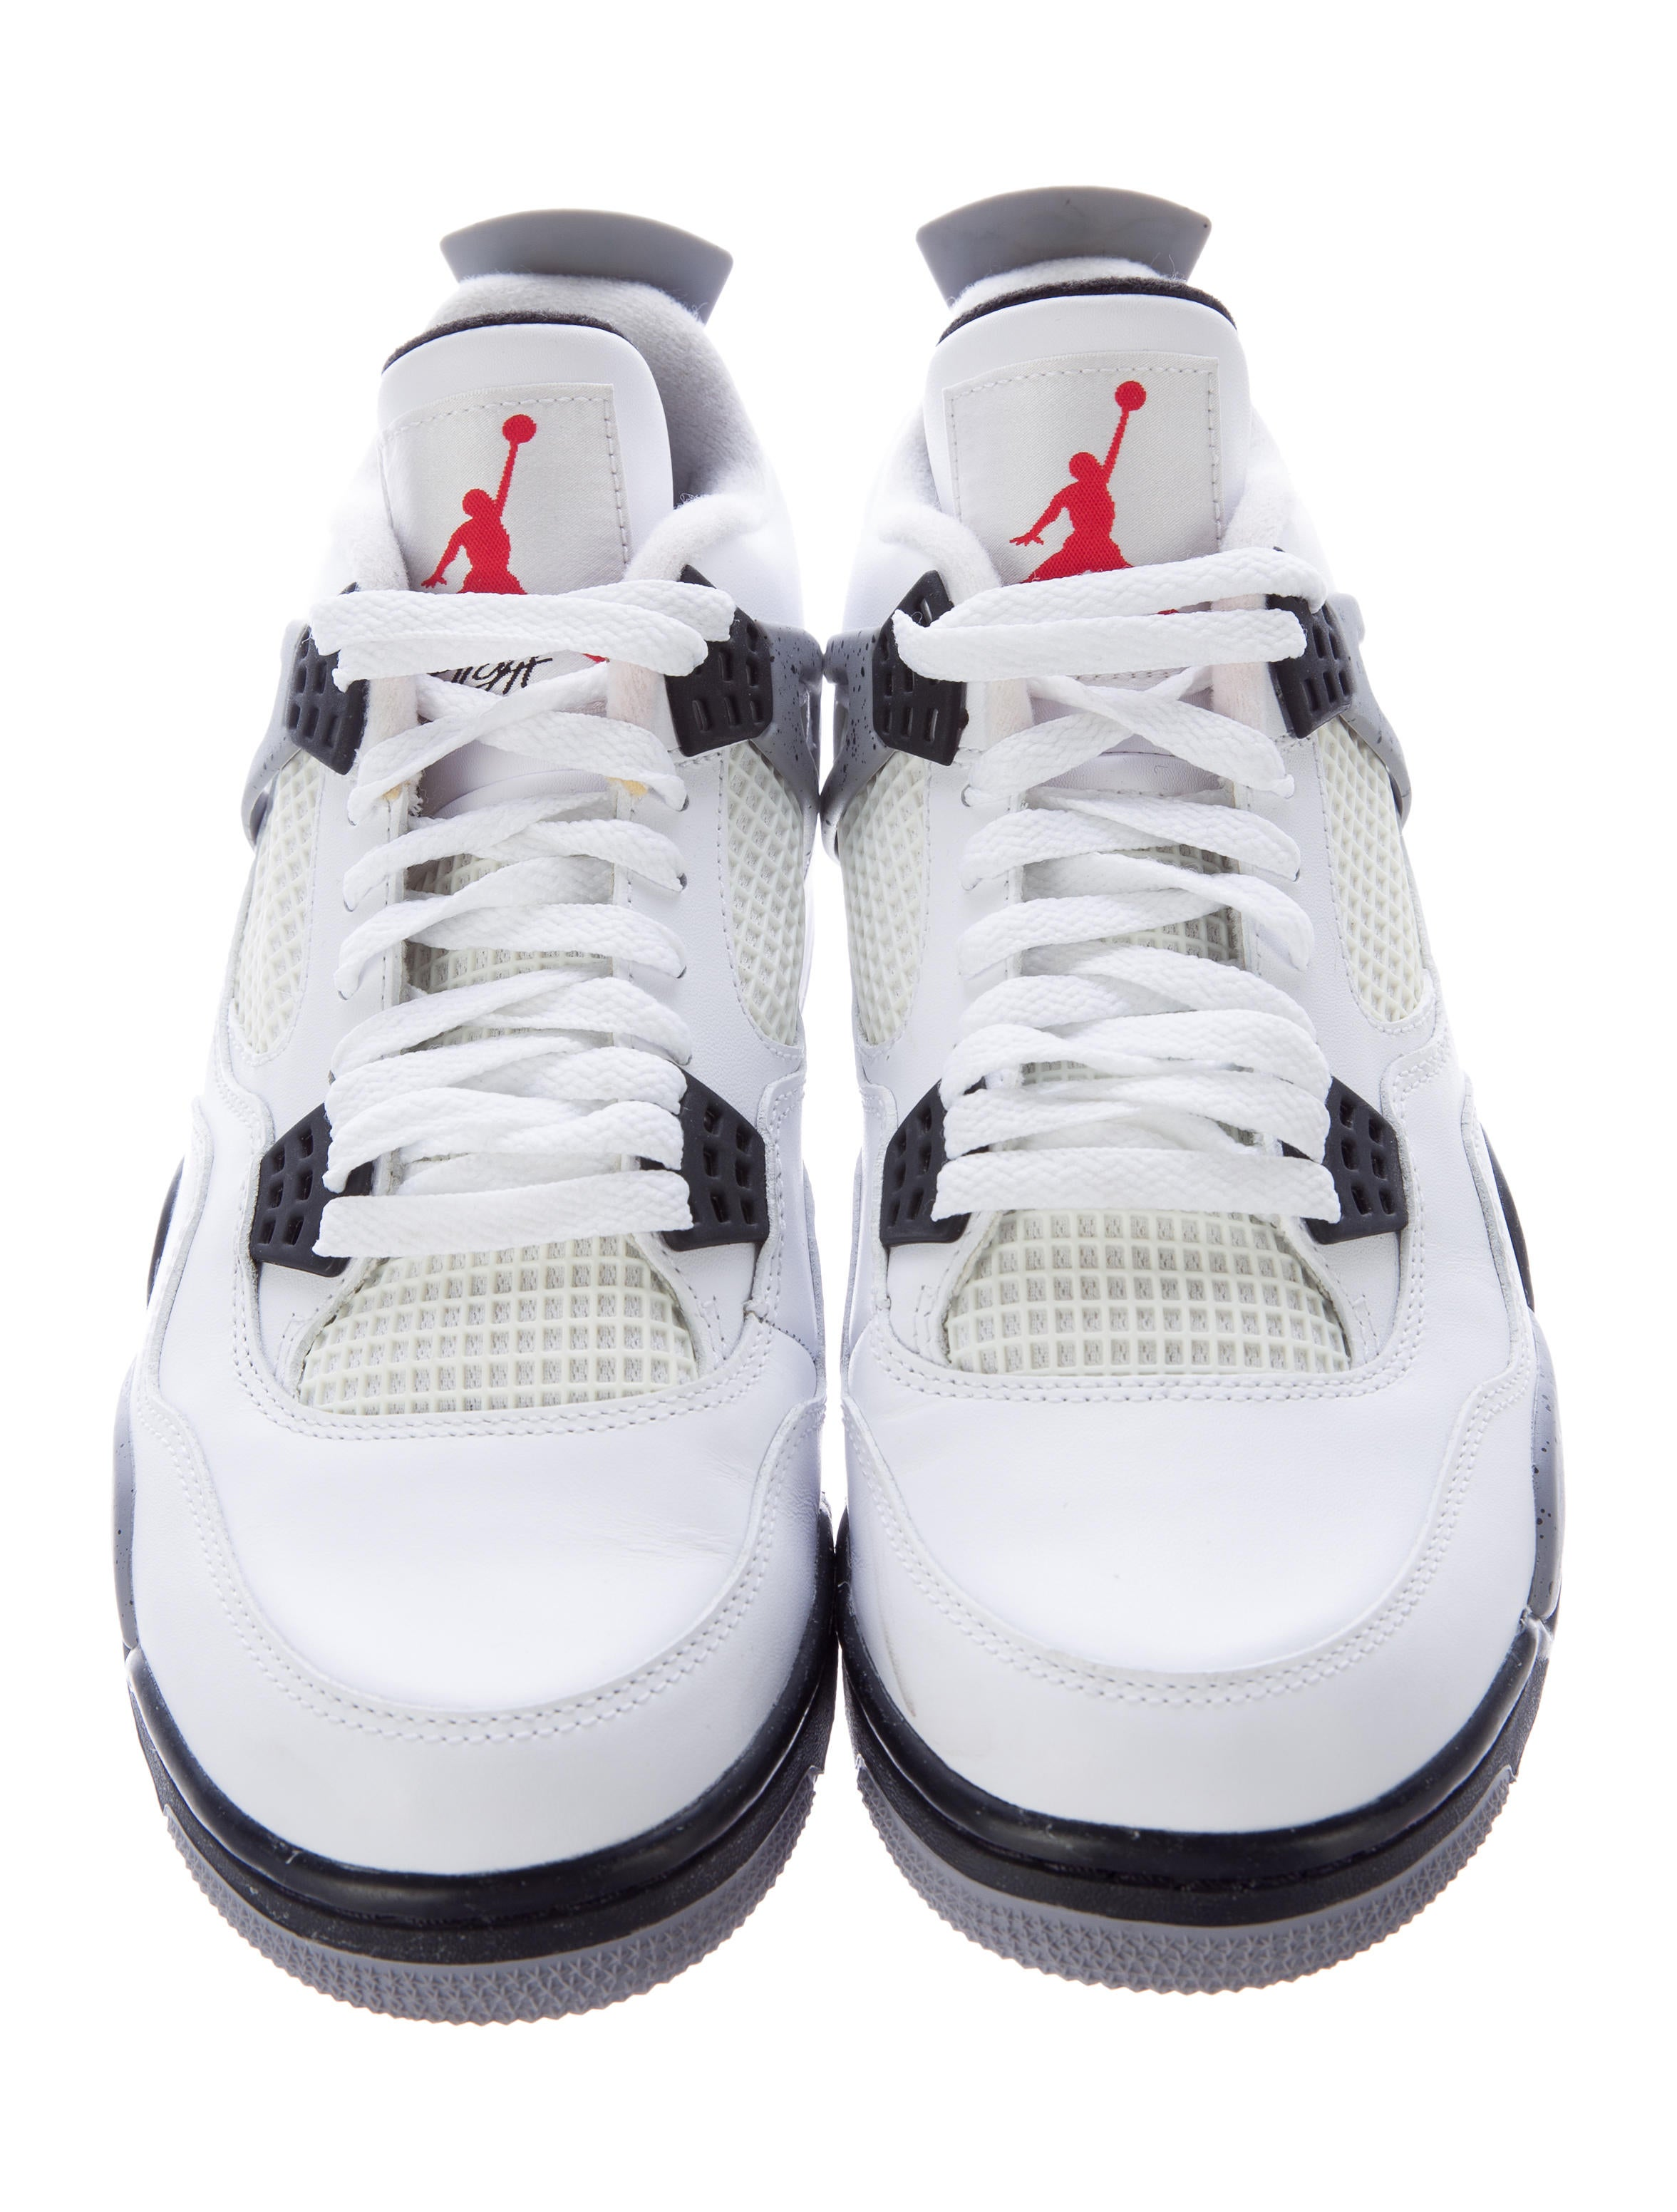 fabe657fe55d36 Nike Air Jordan 4 Retro Sneakers Nike Air Escape Grey Room Ideas ...